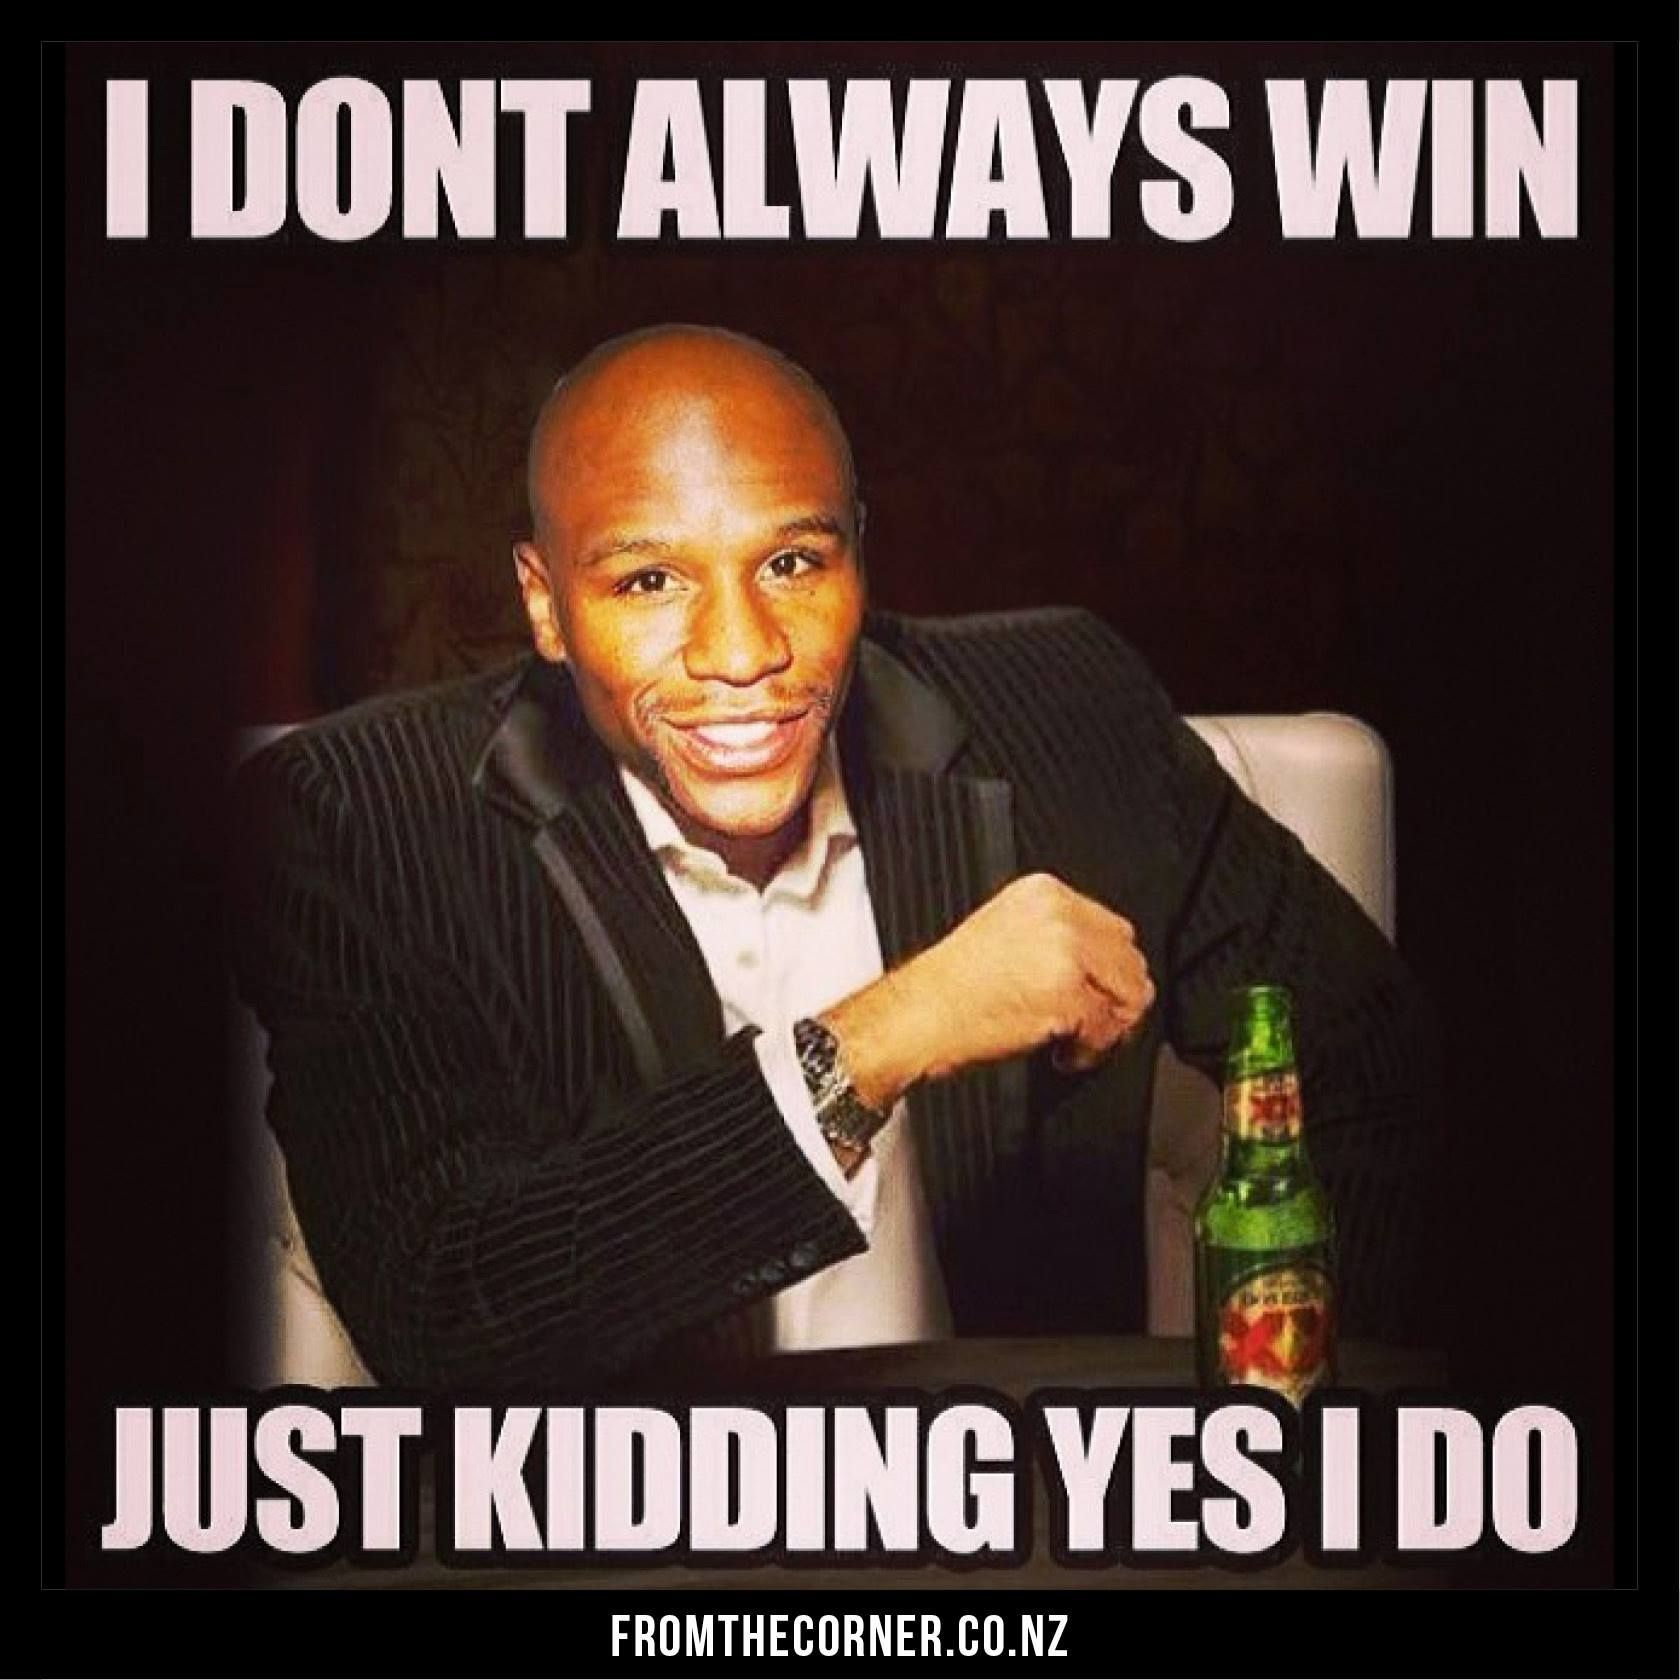 Funny Floyd Mayweather Jnr Undefeated Legend Of Boxing